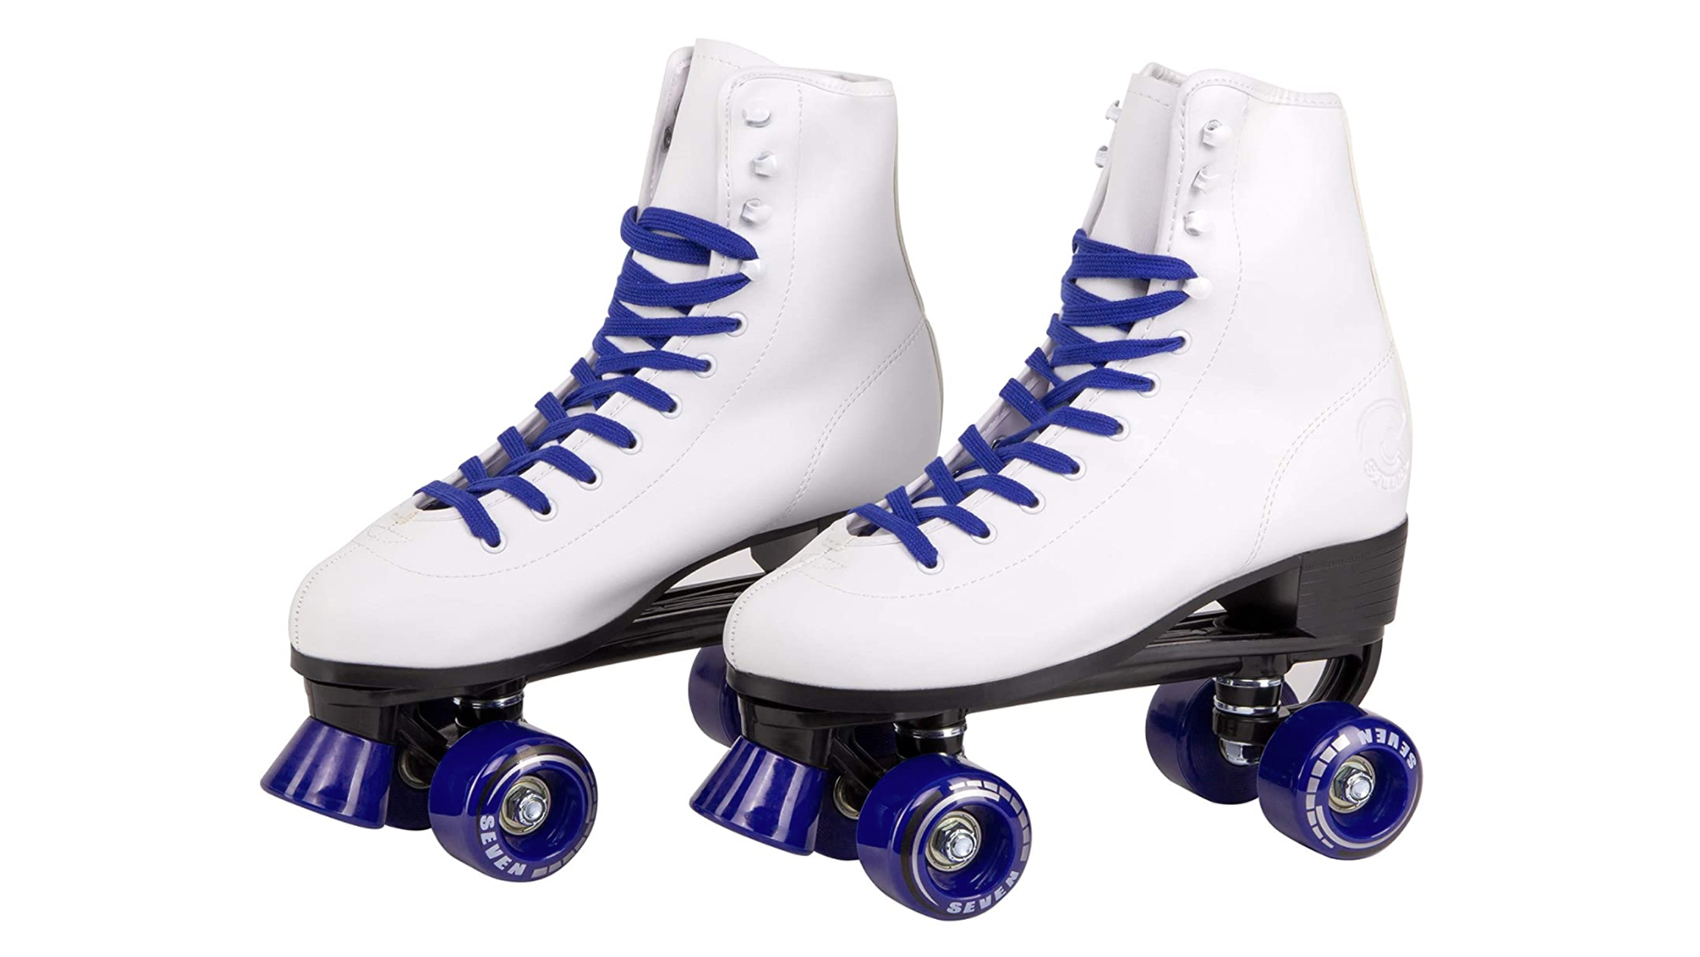 Redson Womens Roller Skates Four-Wheels Artificial Leather High-top Roller Skates Perfect Indoor Outdoor Adult Roller Skates with Bag